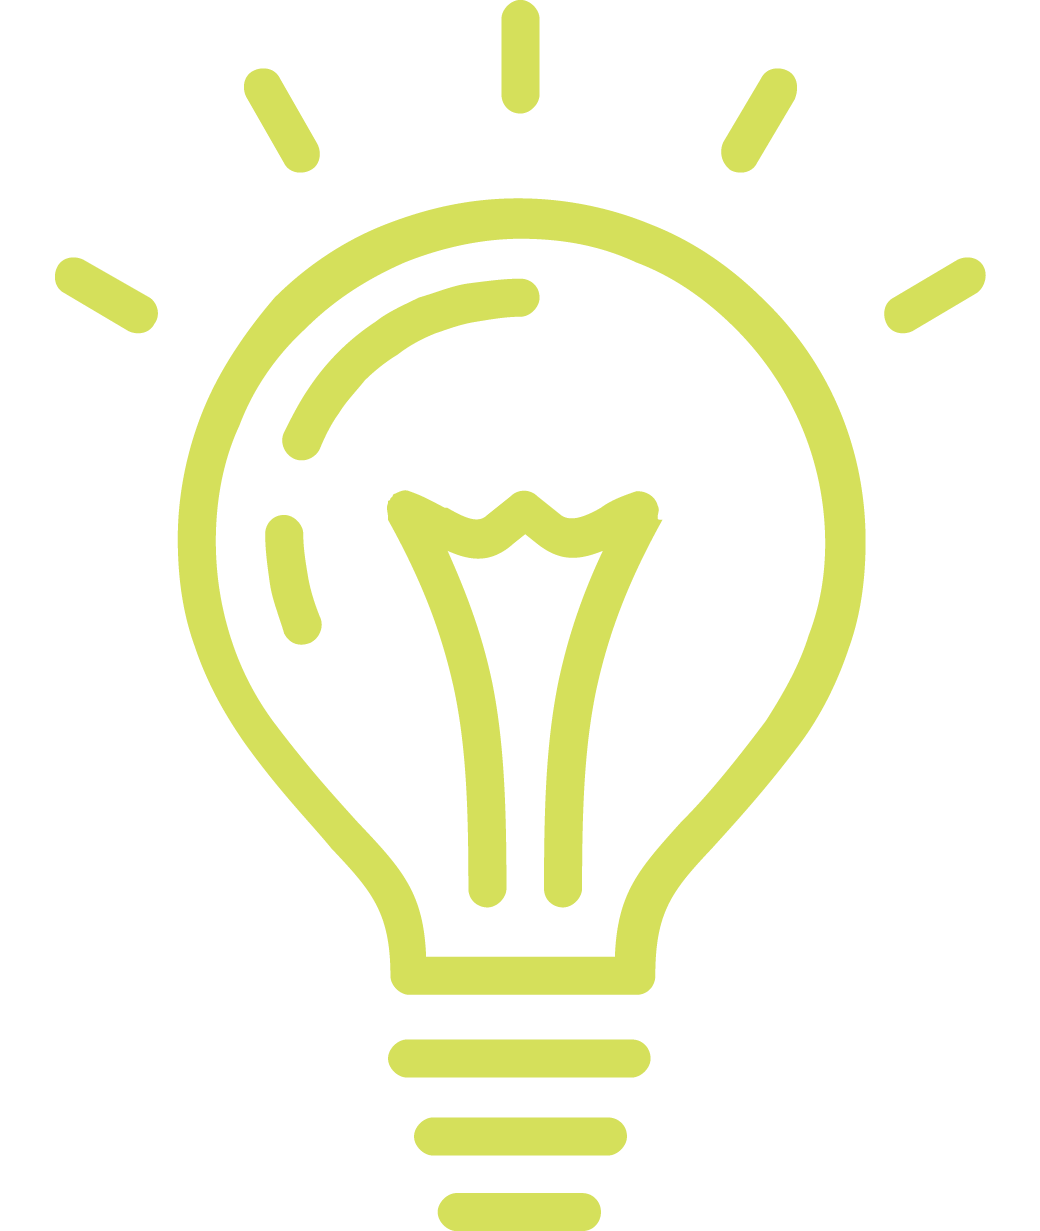 aims_lightbulb